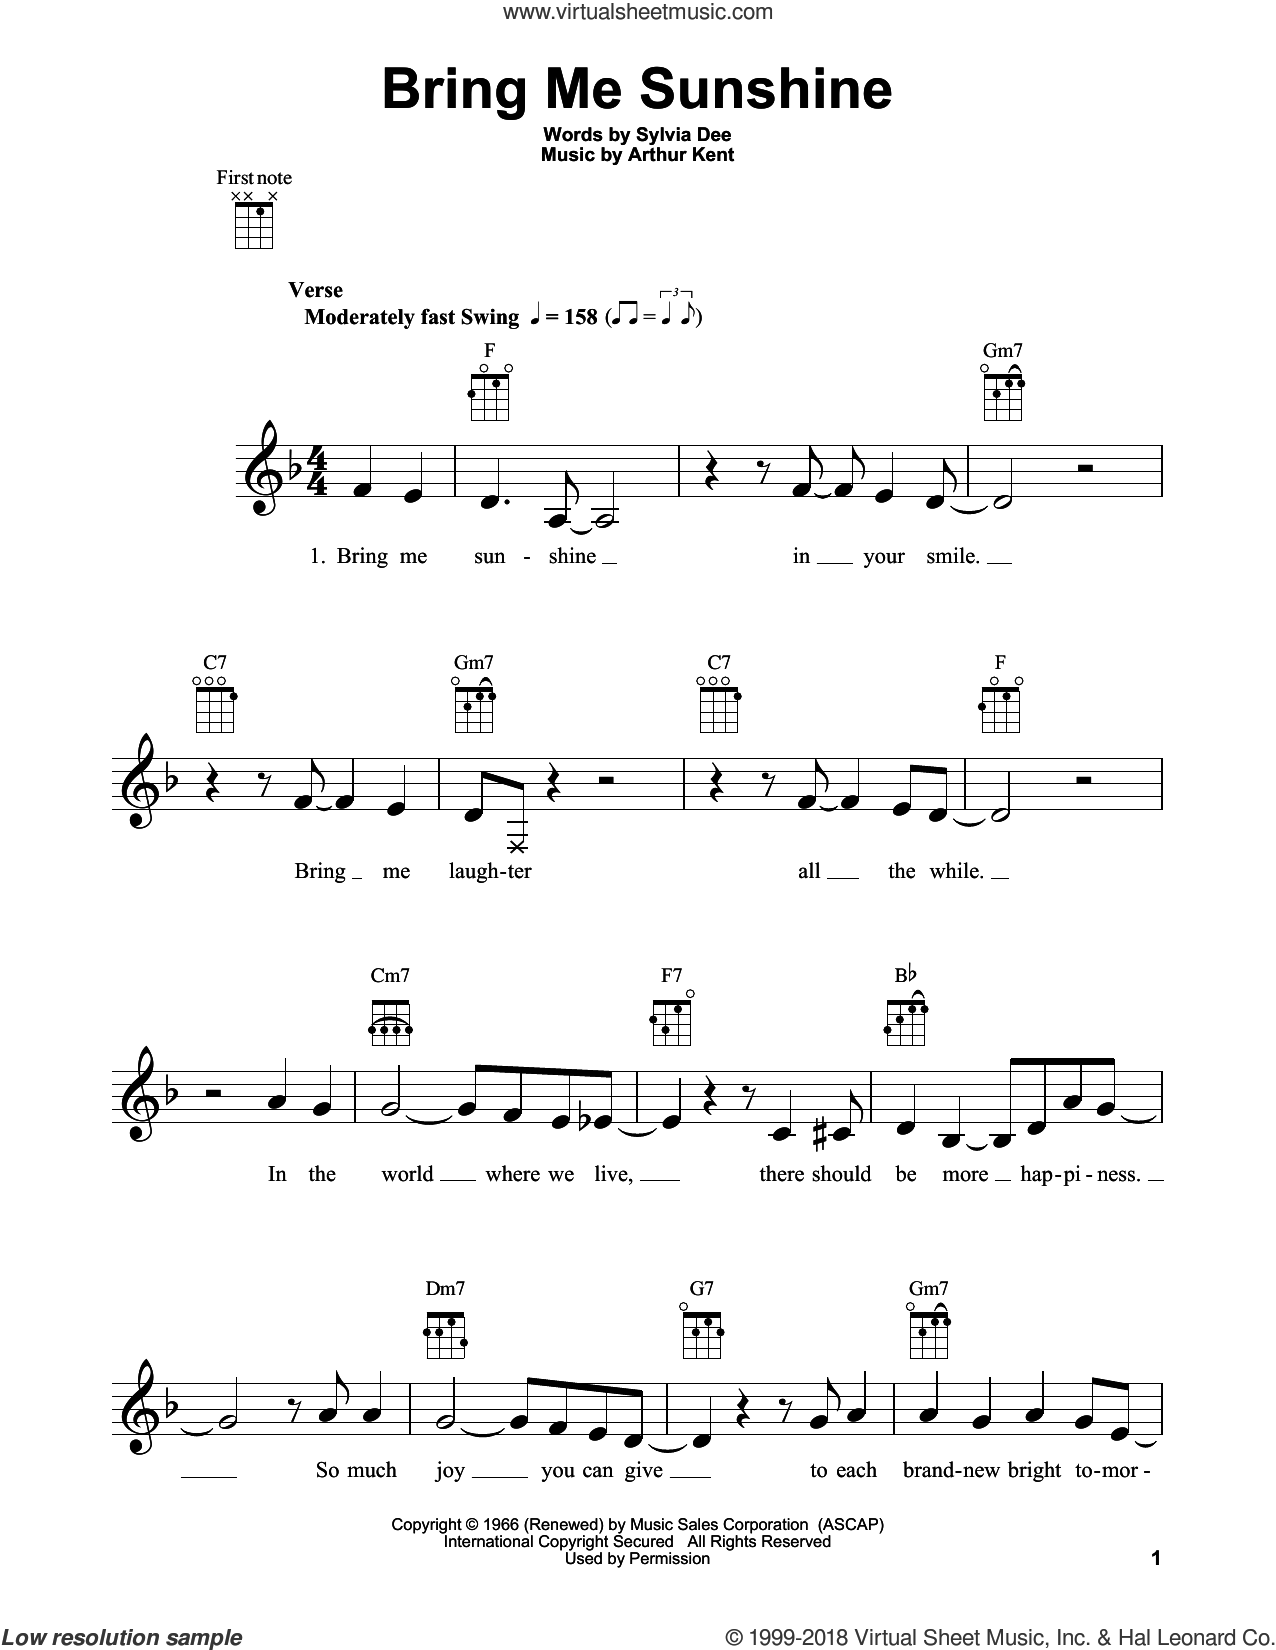 Bring Me Sunshine sheet music for ukulele by Willie Nelson, Arthur Kent and Sylvia Dee, intermediate skill level